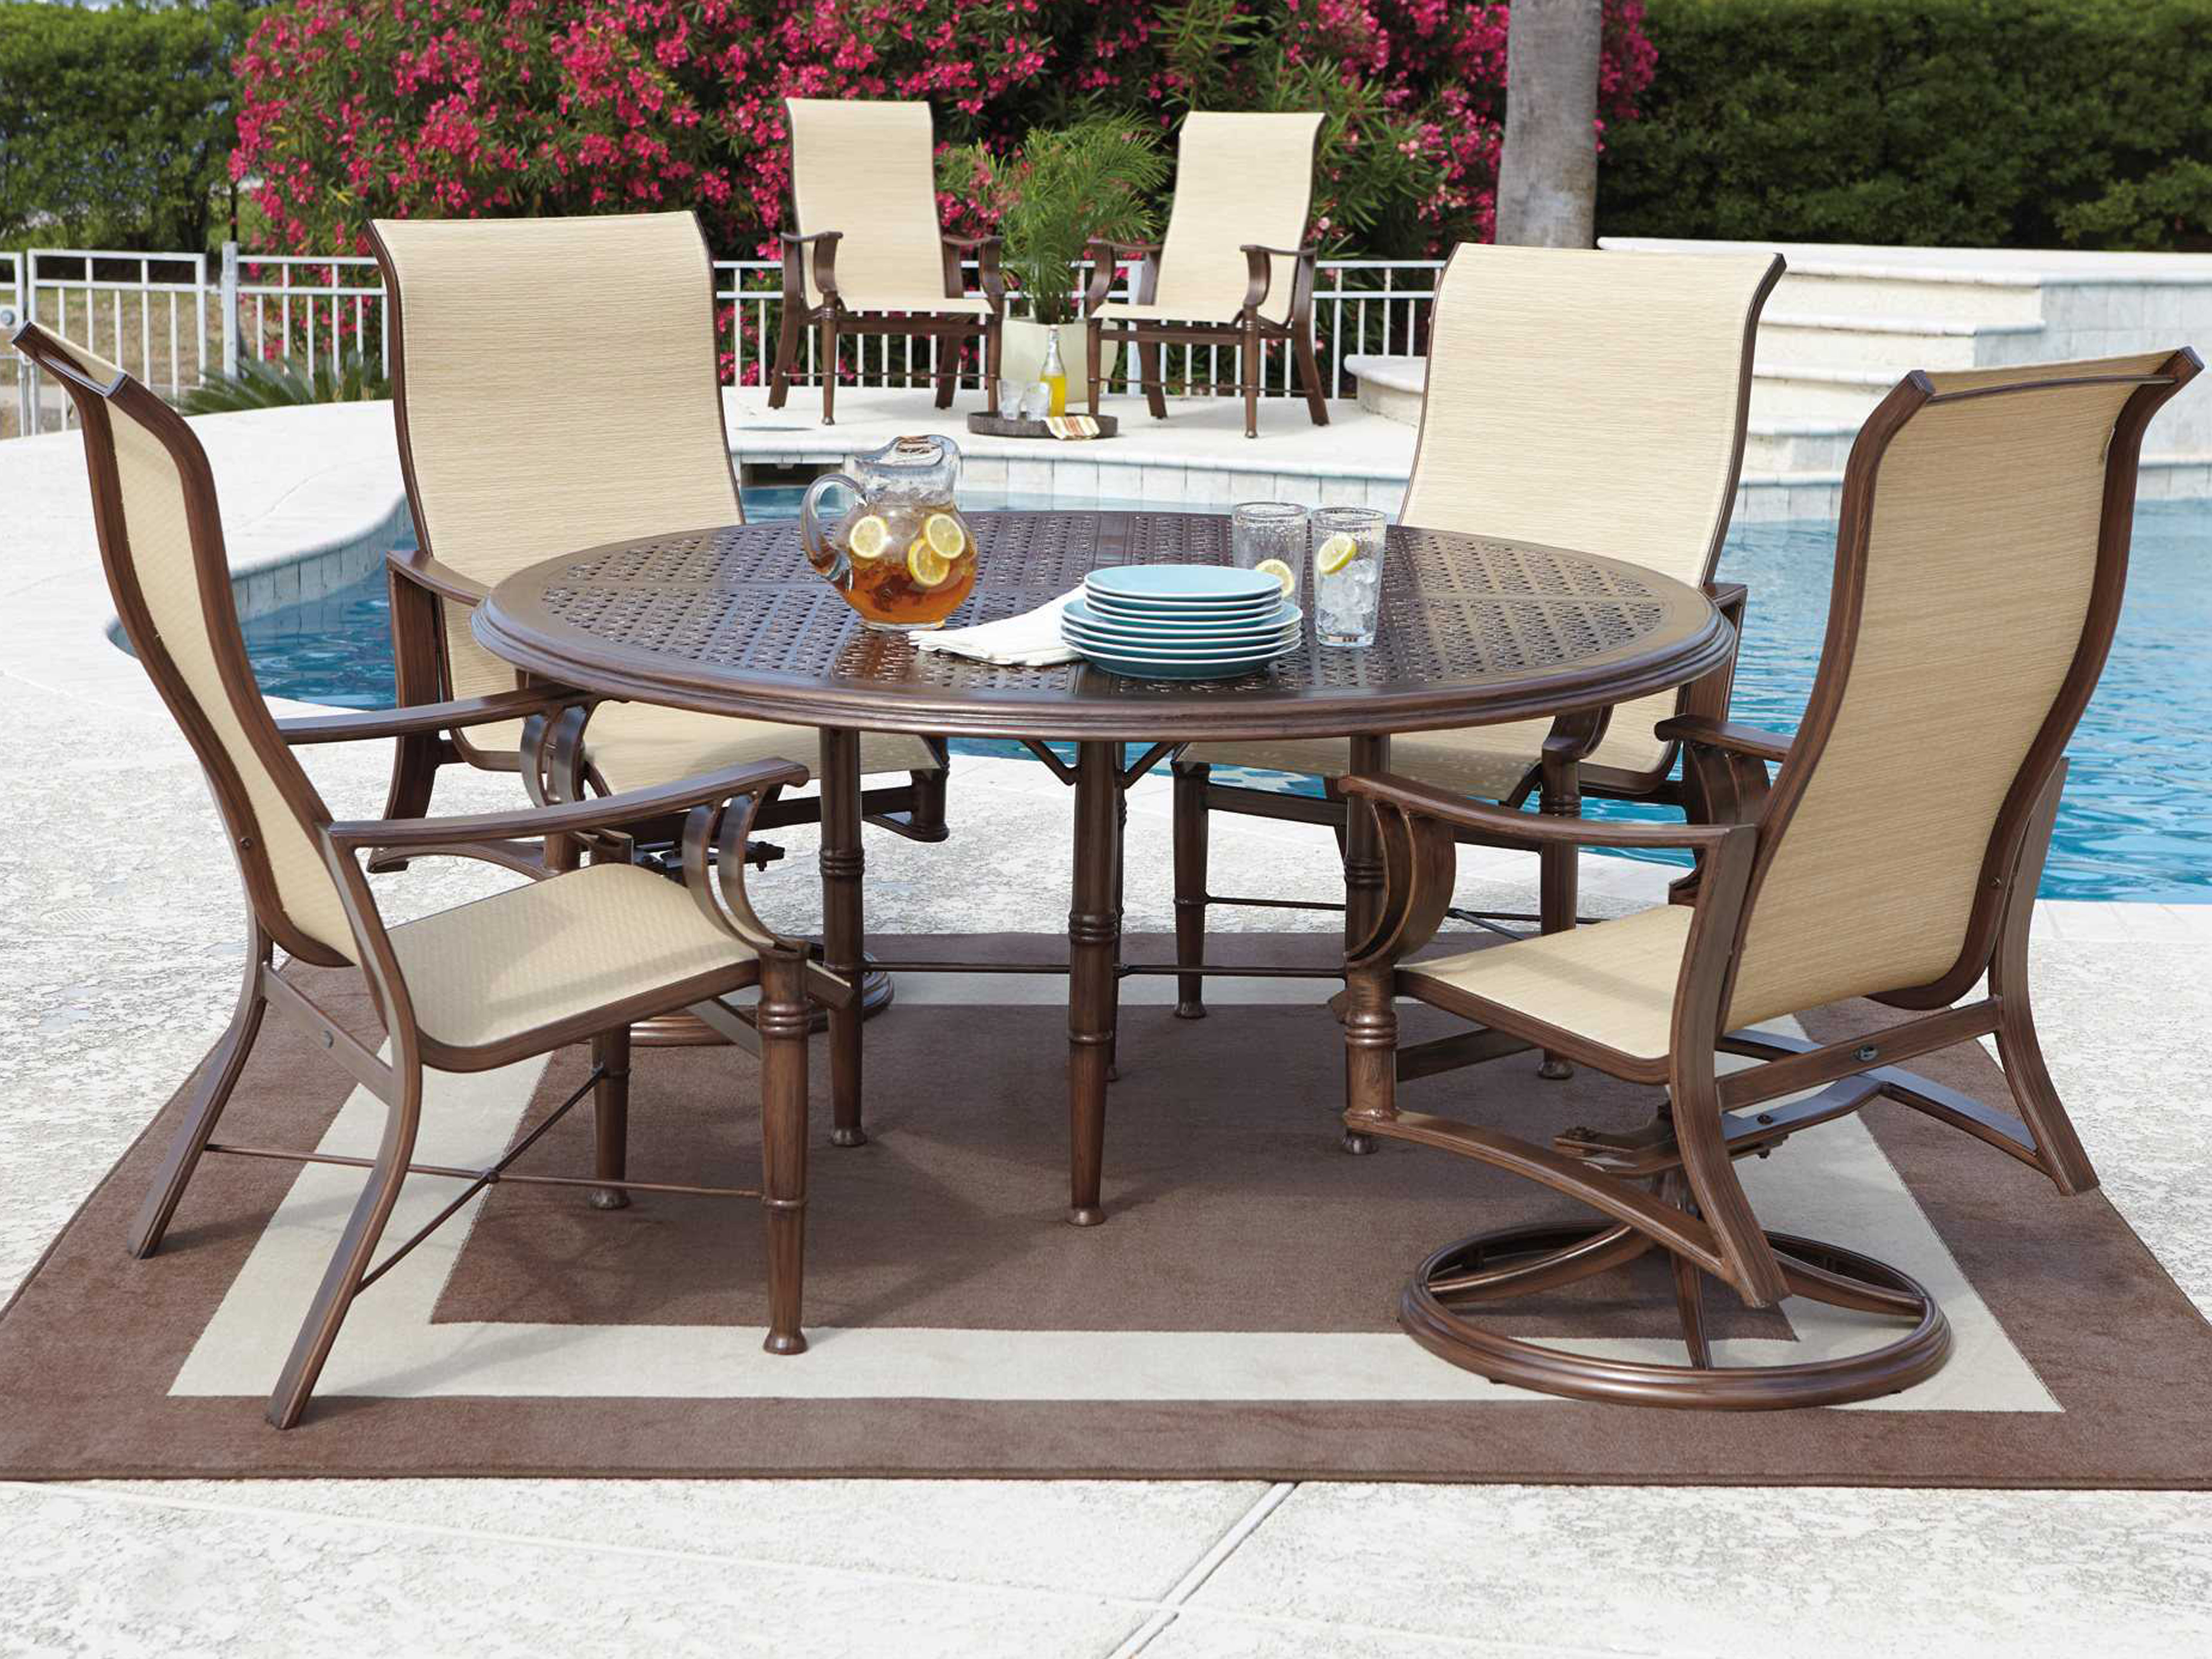 Woodard Cast Aluminum Hampton 48 Round Table Top with Umbrella